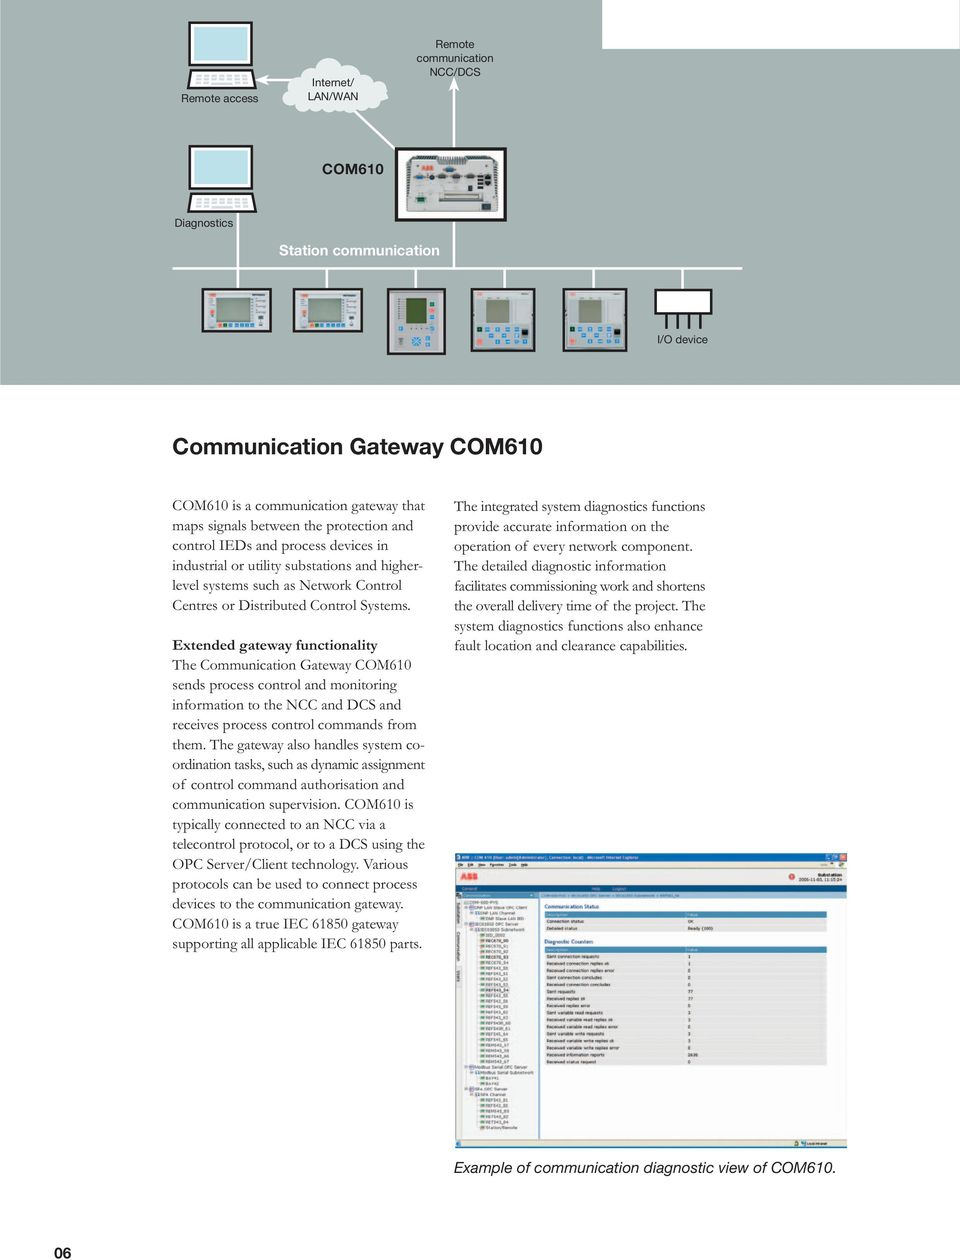 Extended gateway functionality The Communication Gateway COM610 sends process control and monitoring information to the NCC and DCS and receives process control commands from them.